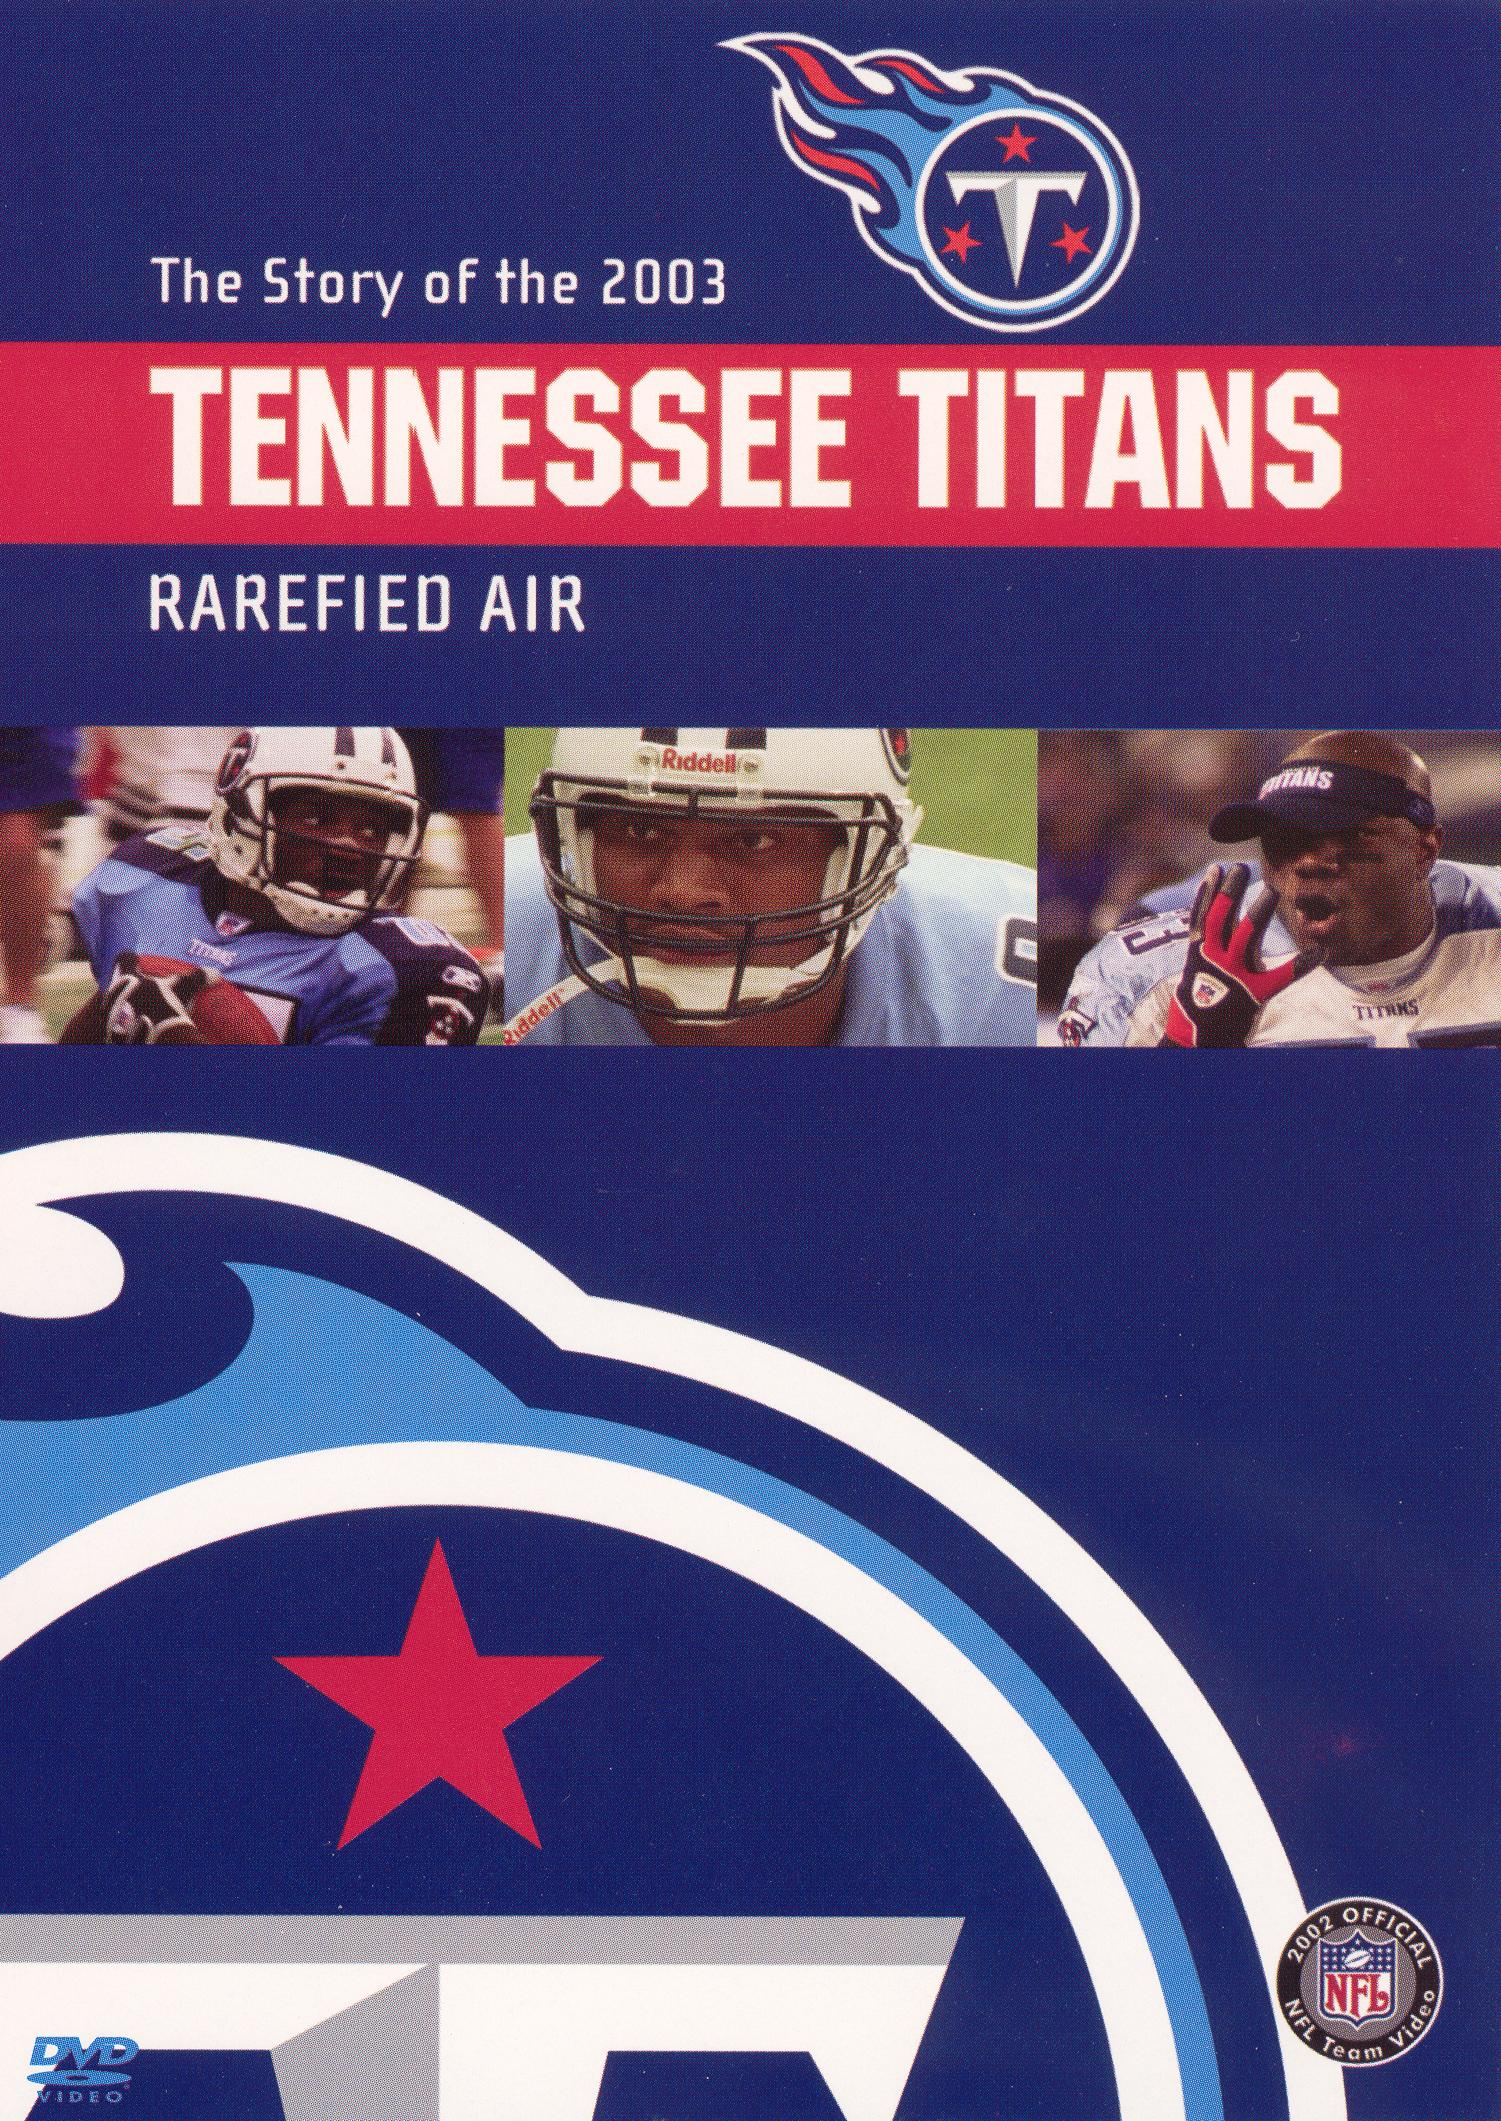 NFL: 2003 Tennessee Titans Team Video